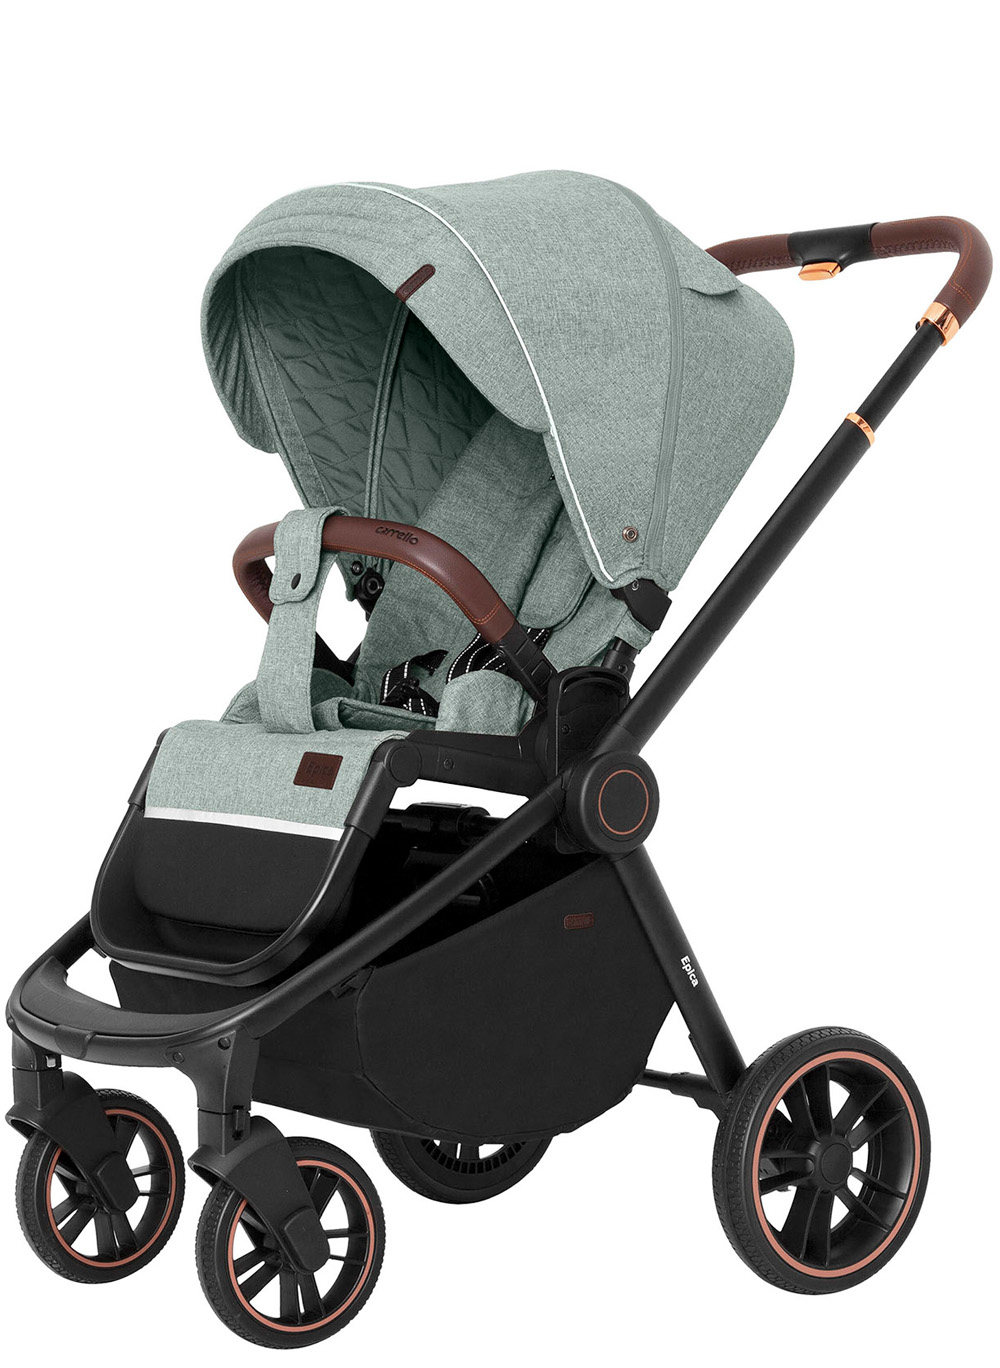 Universal Stroller Epica 2 in 1